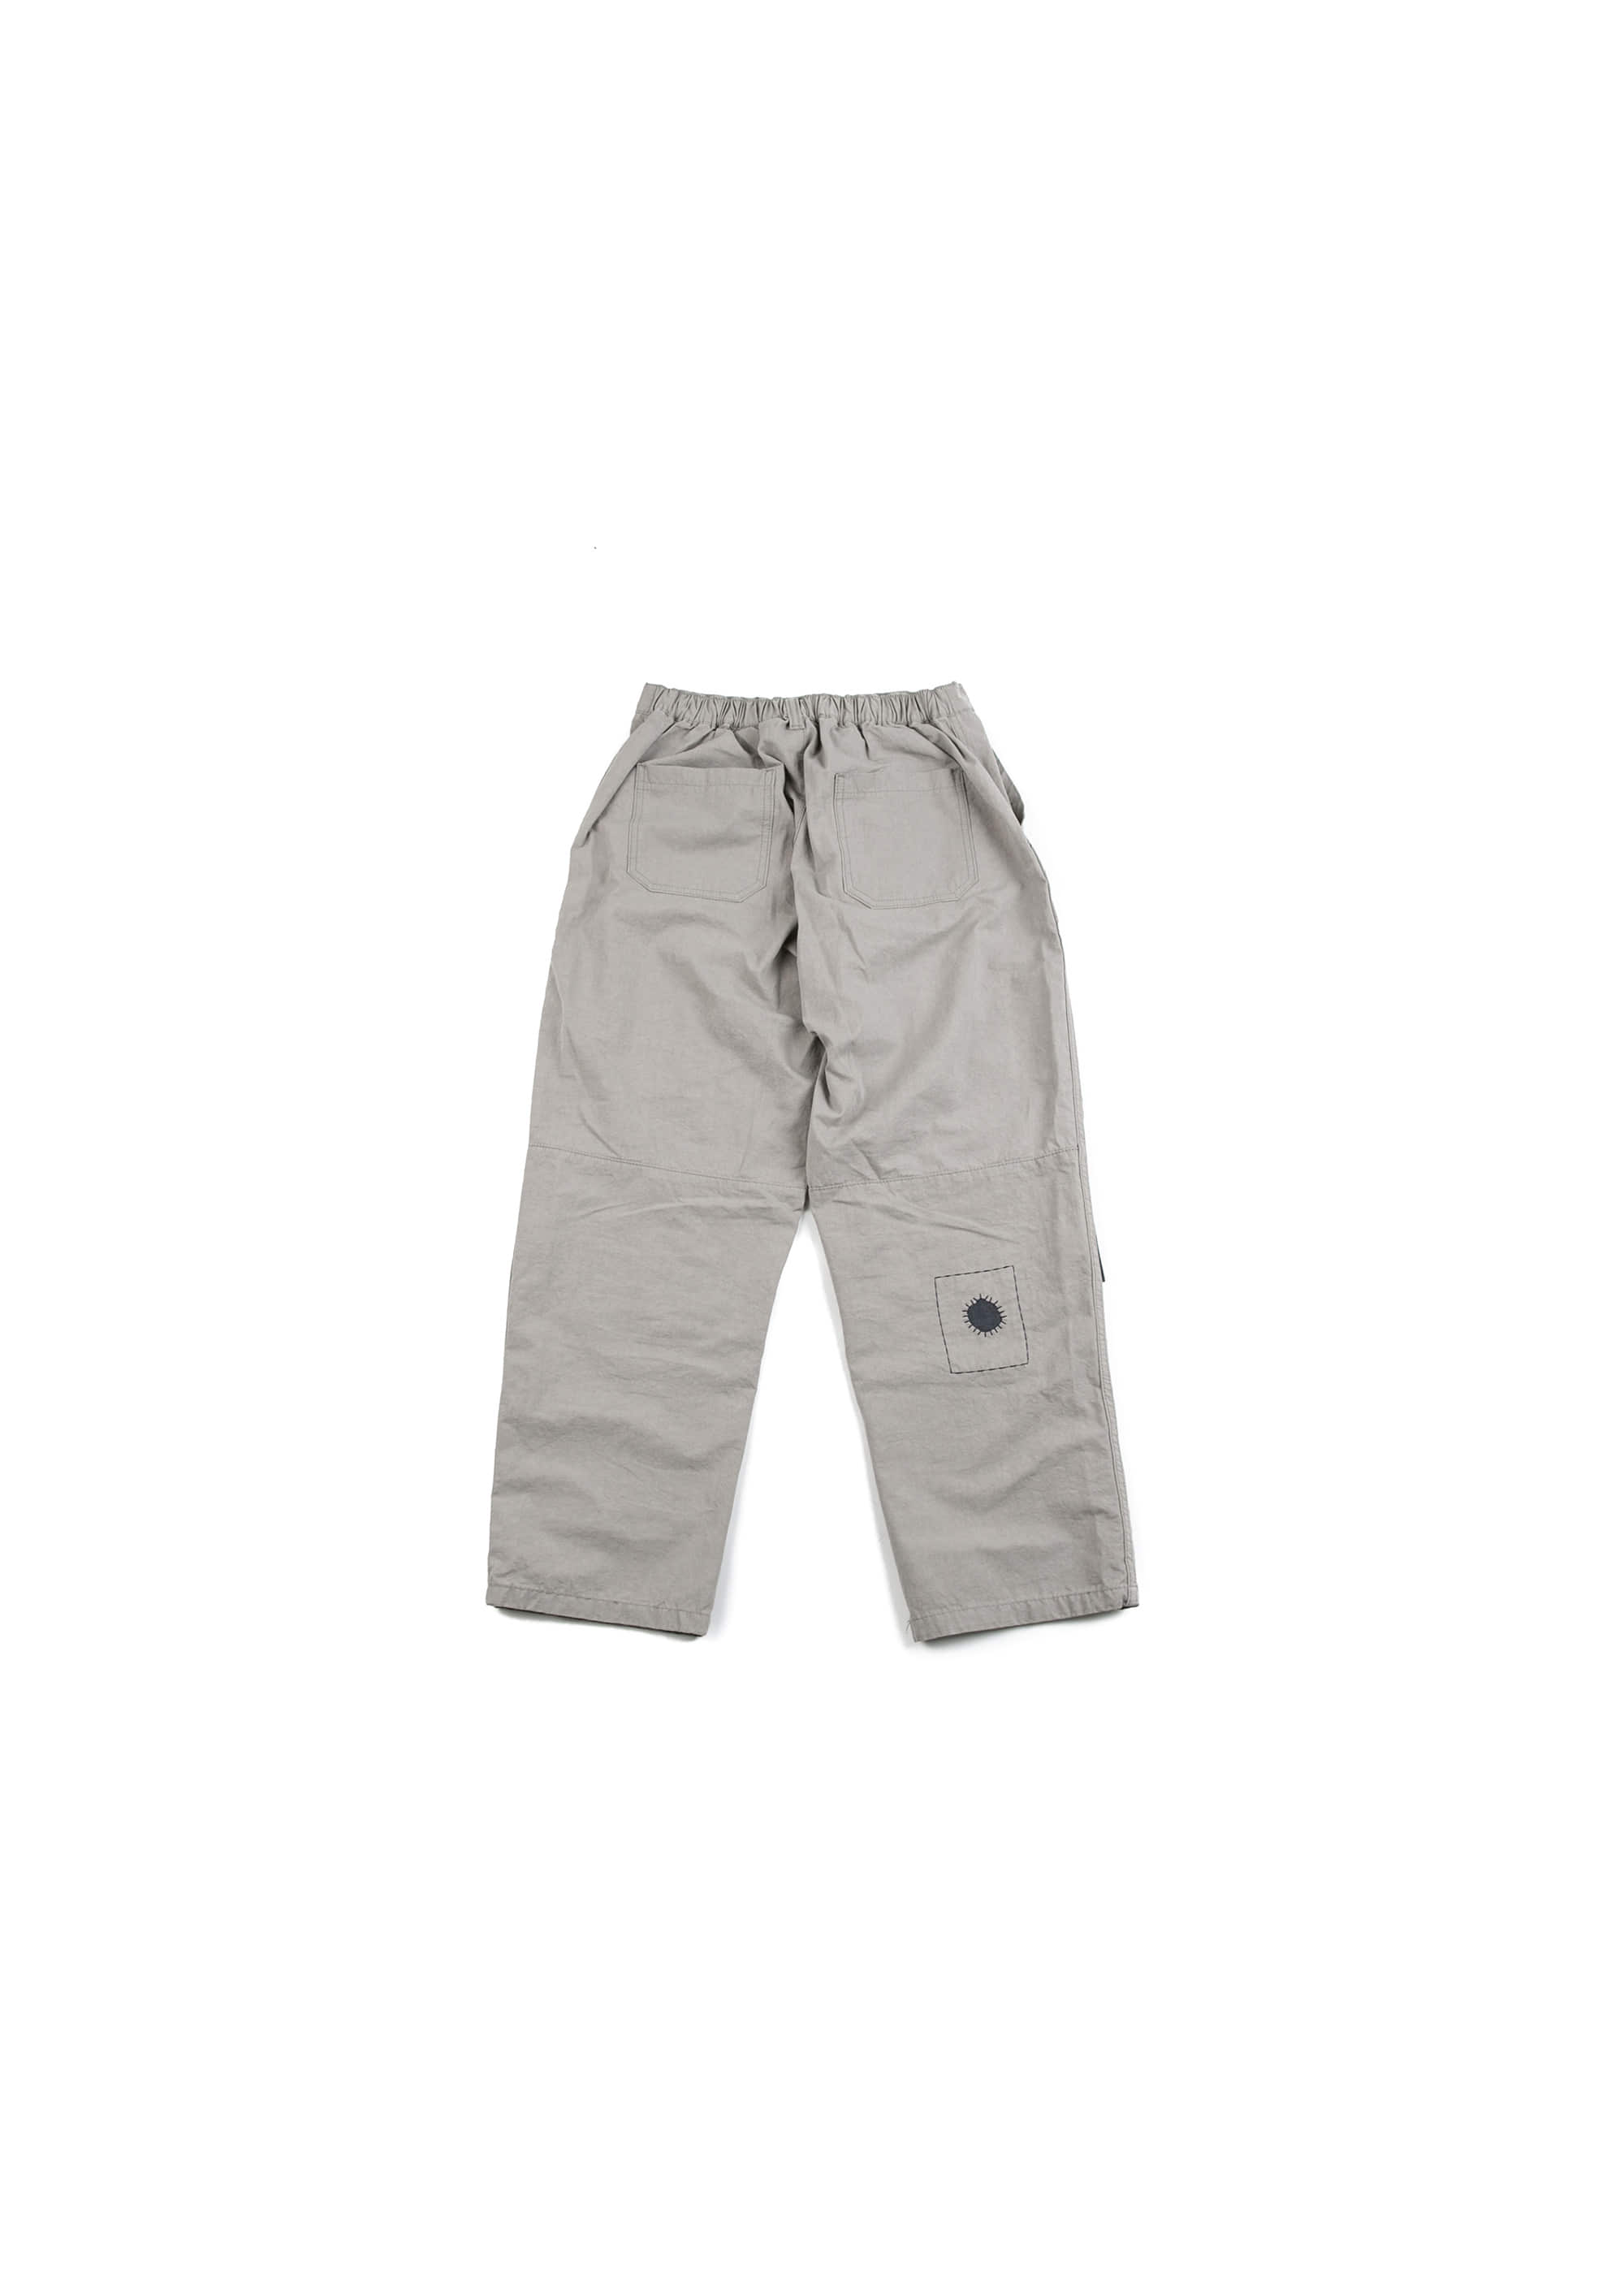 Build Patch Work Pants - Grey [ RE ]